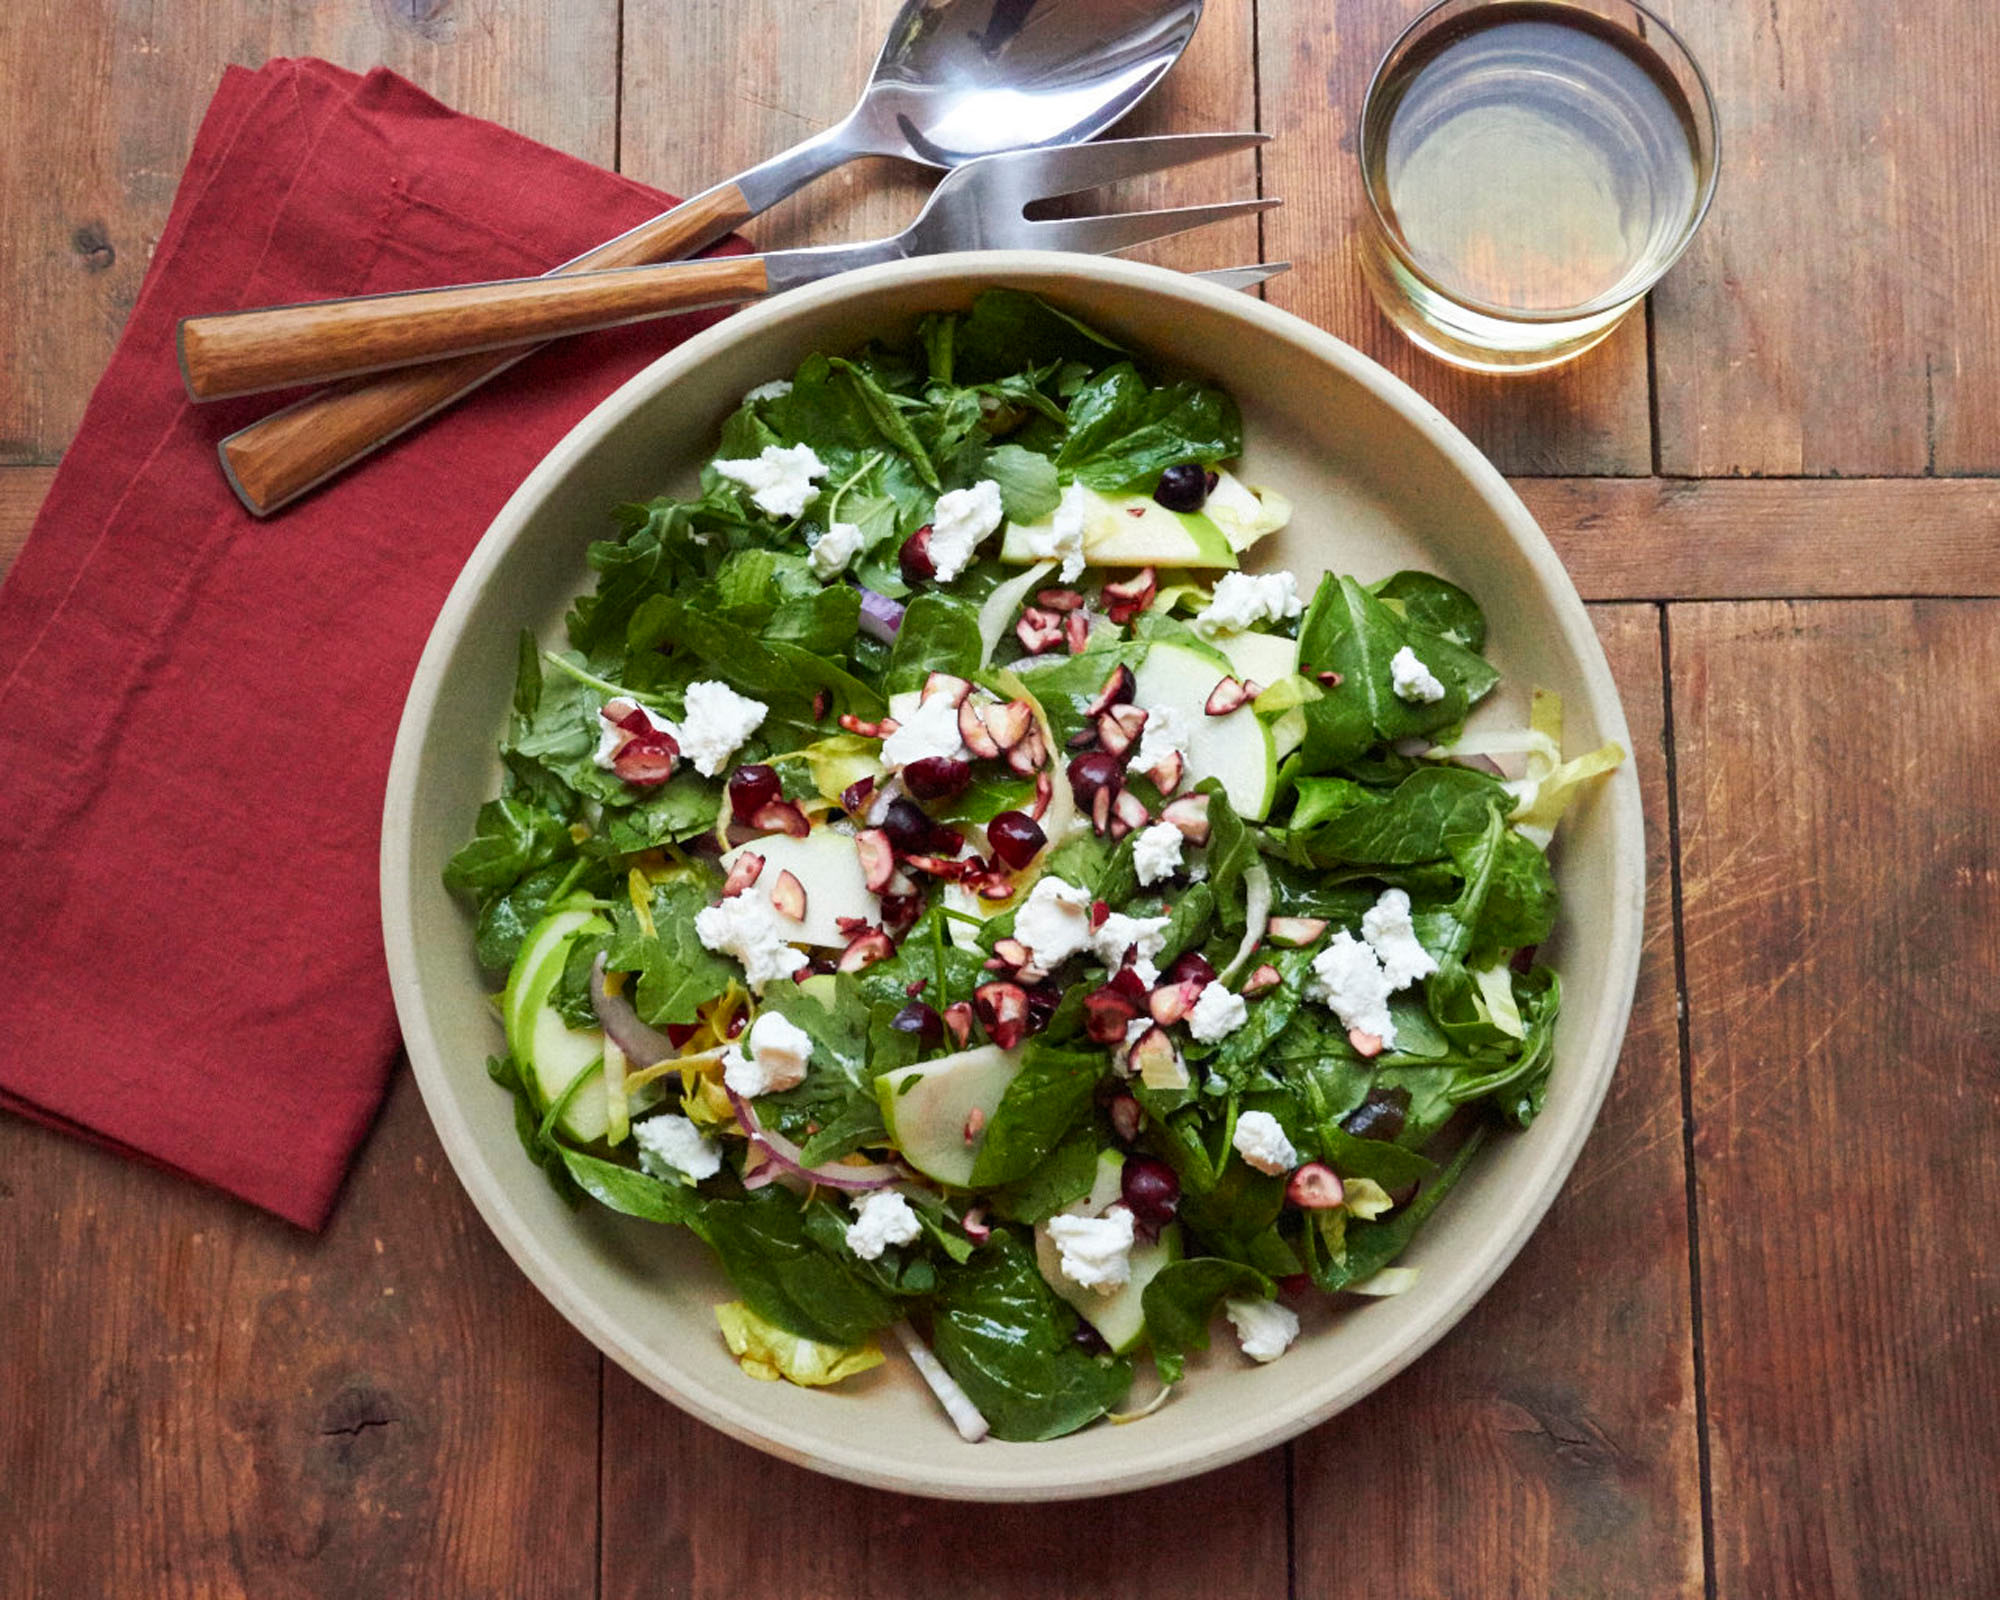 This October 2017 photo shows a winter green salad with cranberries and goat cheese in New York. This salad comes together in 20 minutes, and is a bowl of vibrant color and texture that seems anything but a postscript to the menu.